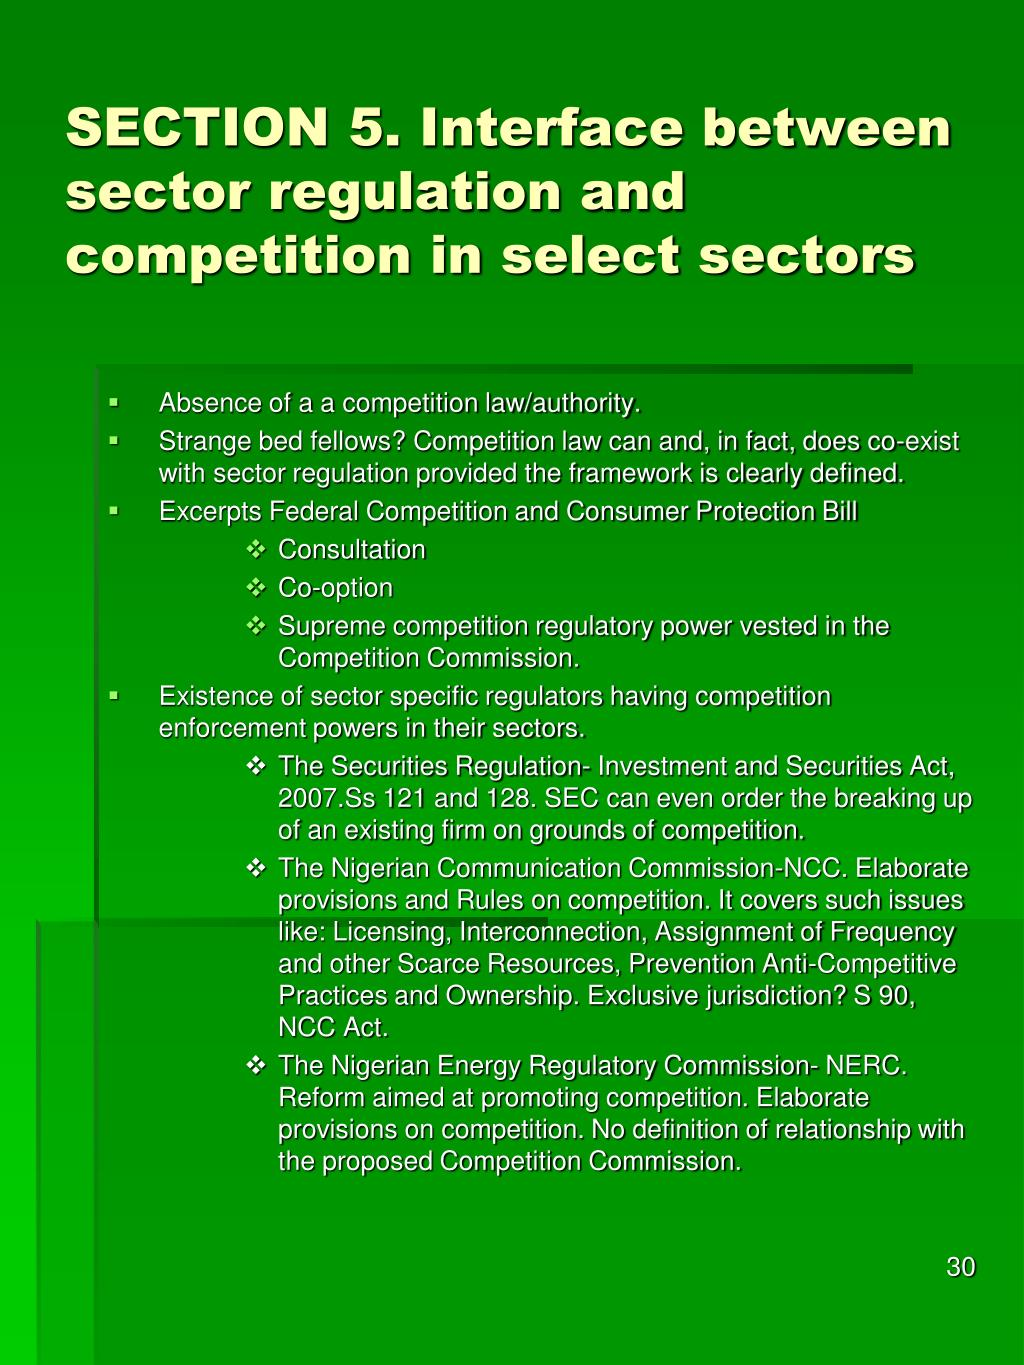 SECTION 5. Interface between sector regulation and competition in select sectors